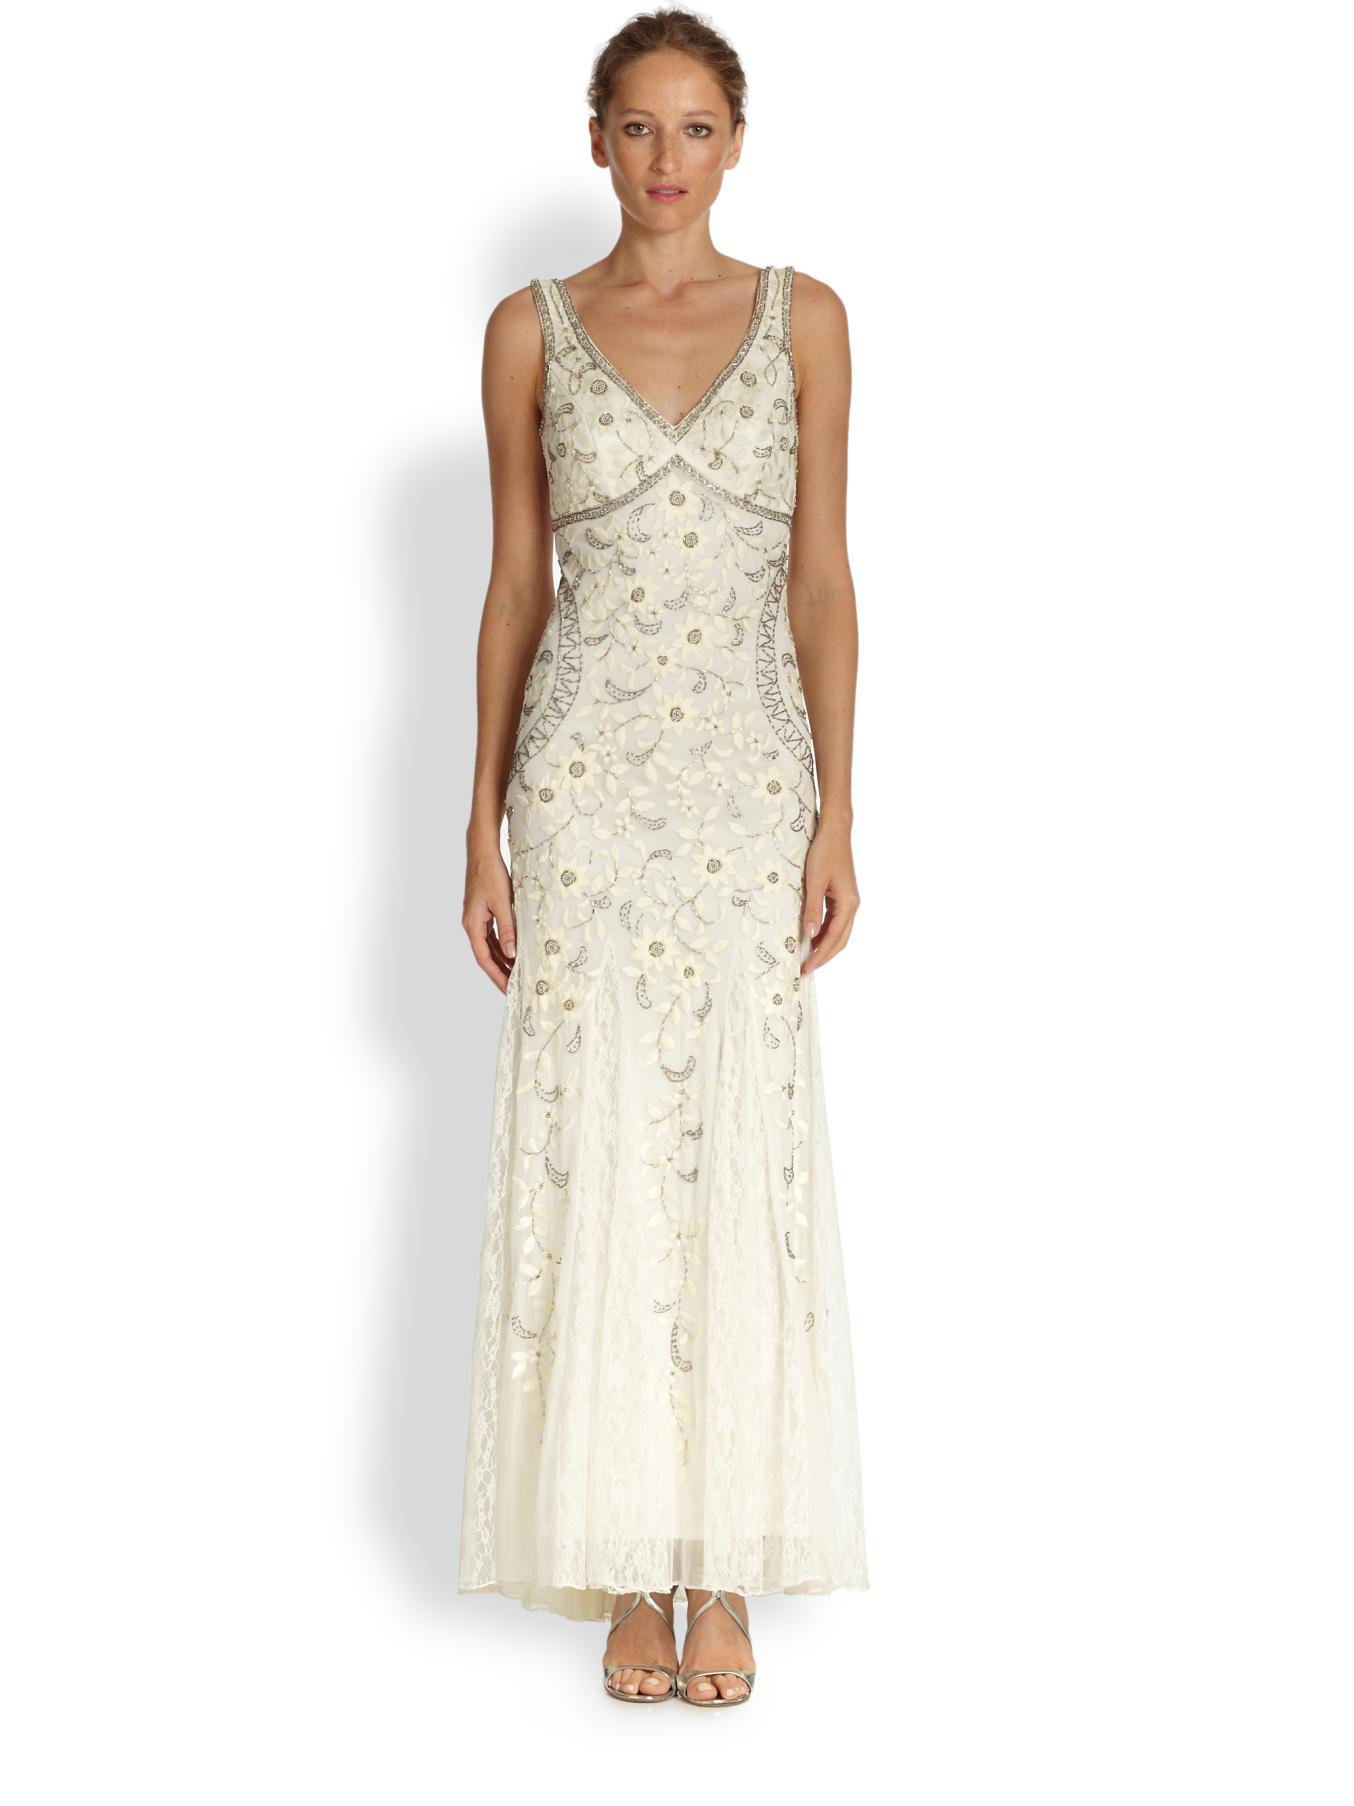 Lyst - Sue Wong Beaded & Floral Embroidered Tulle Gown in White